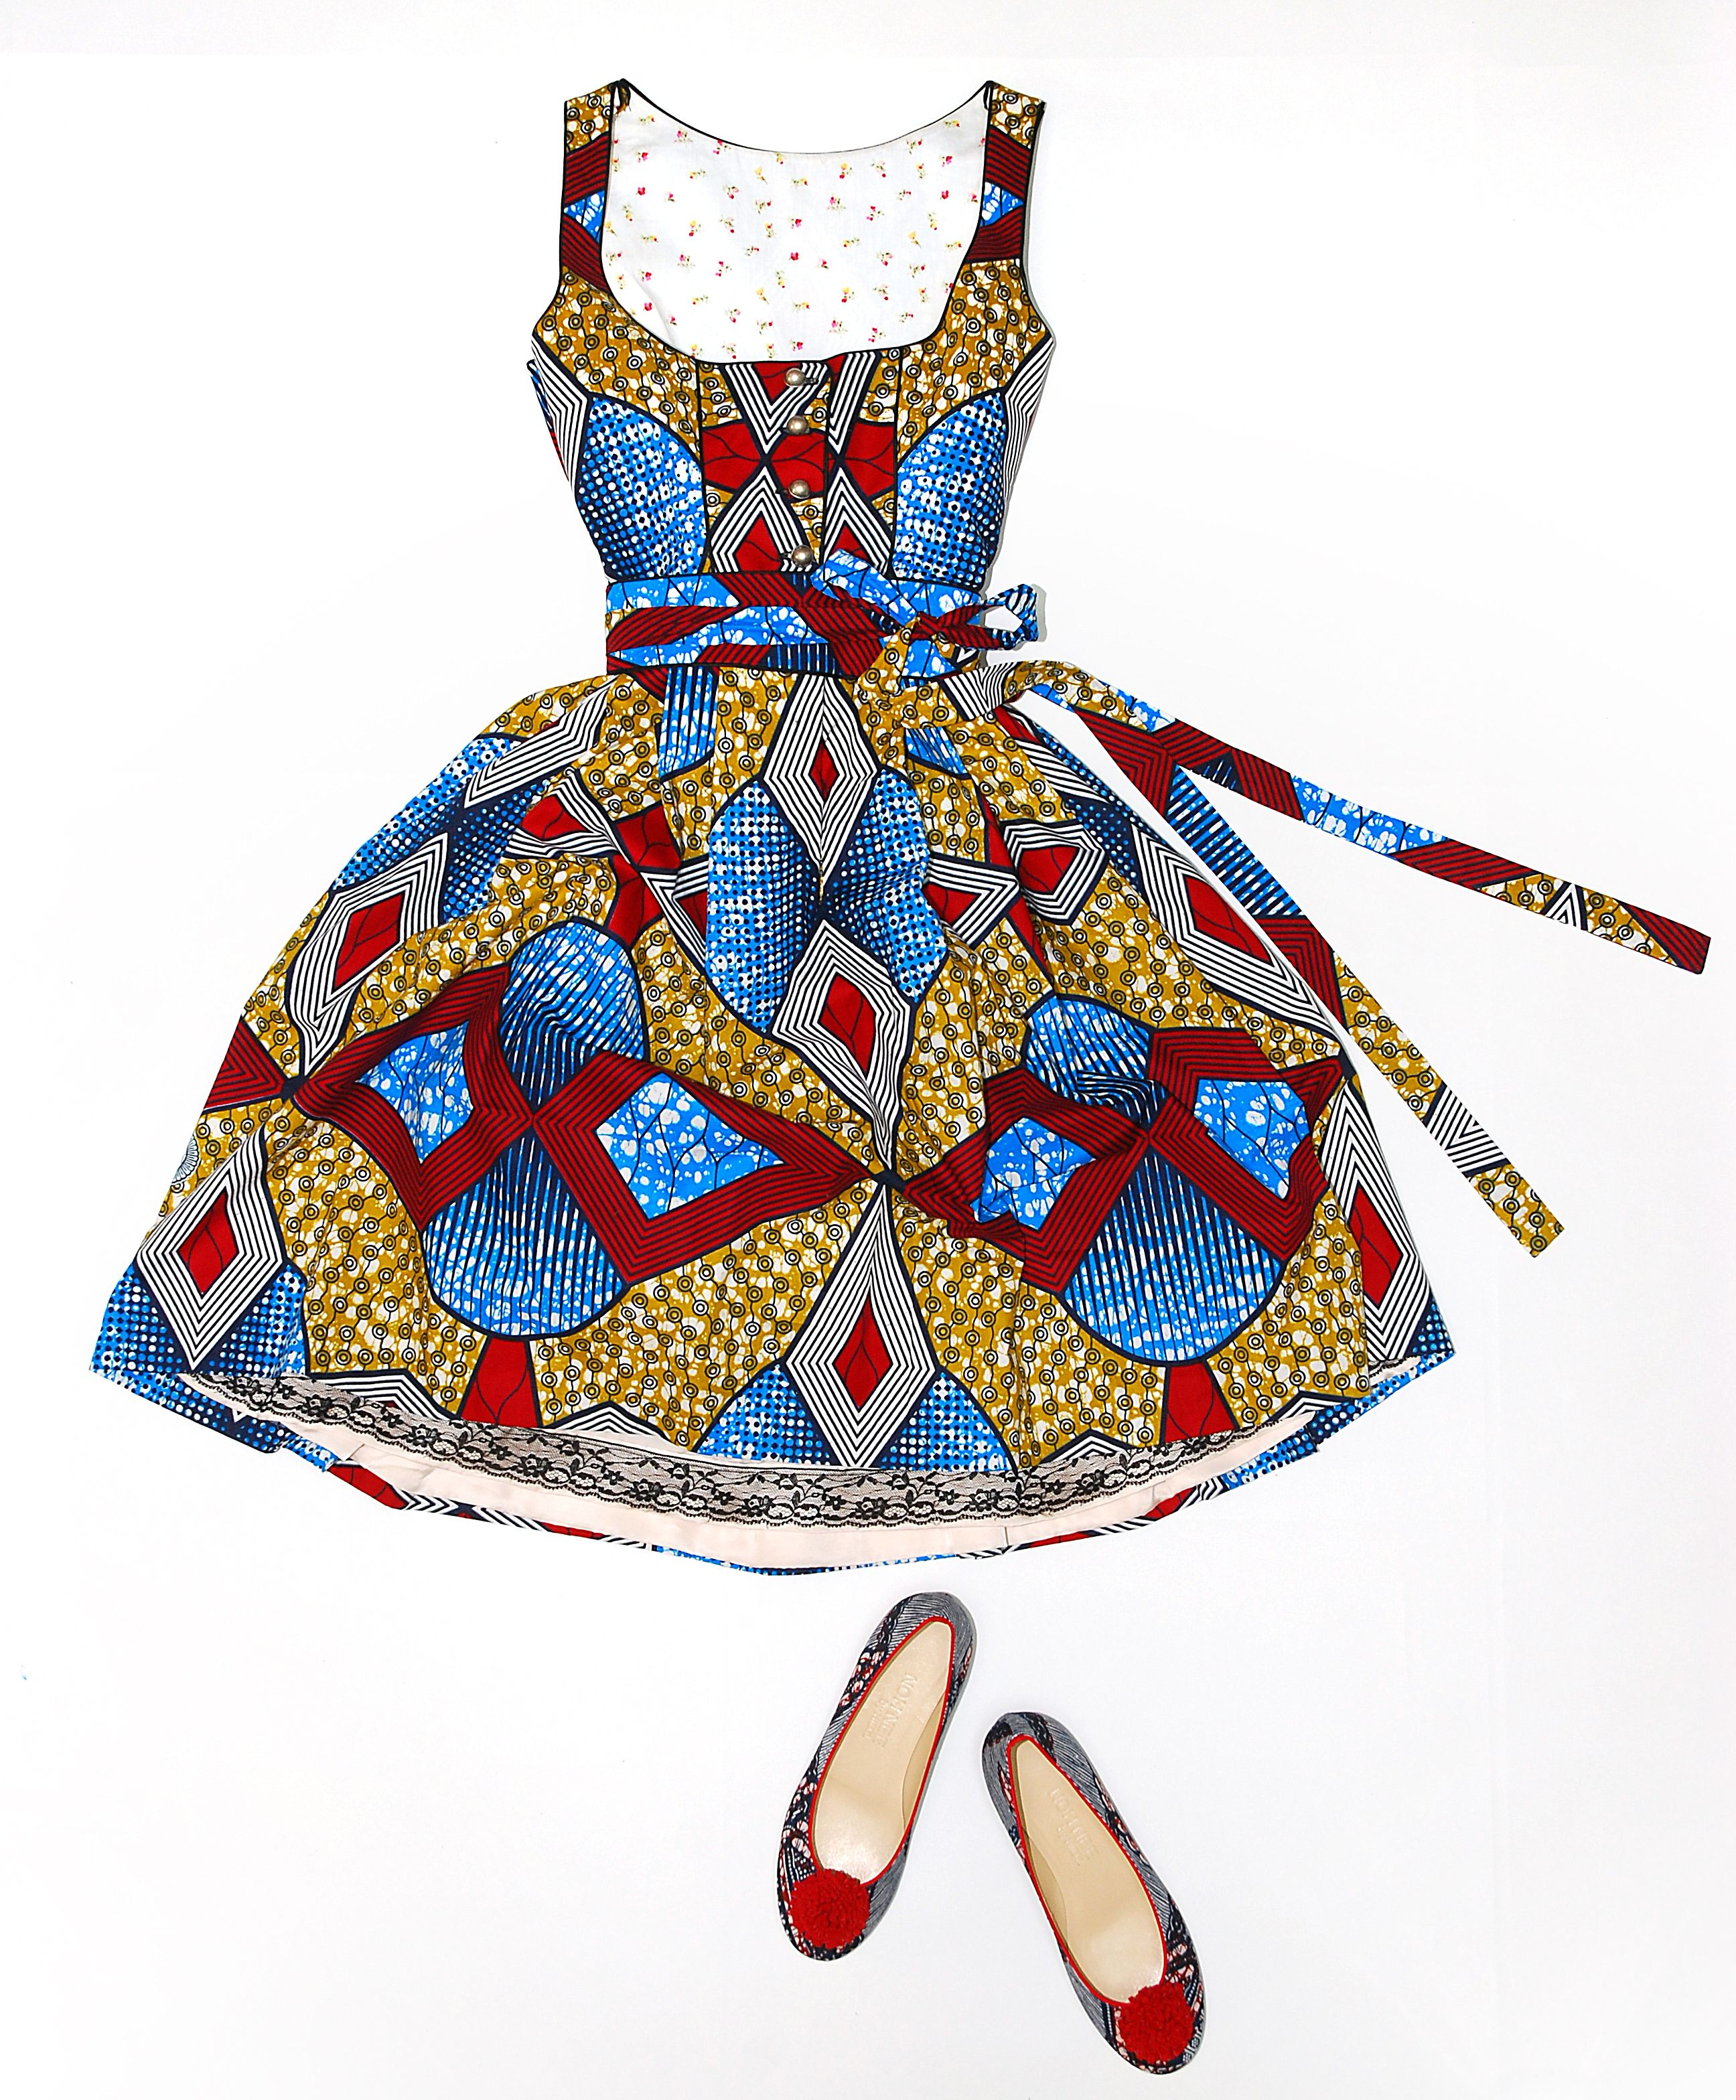 Colourful African dirndl dress by Noh Nee